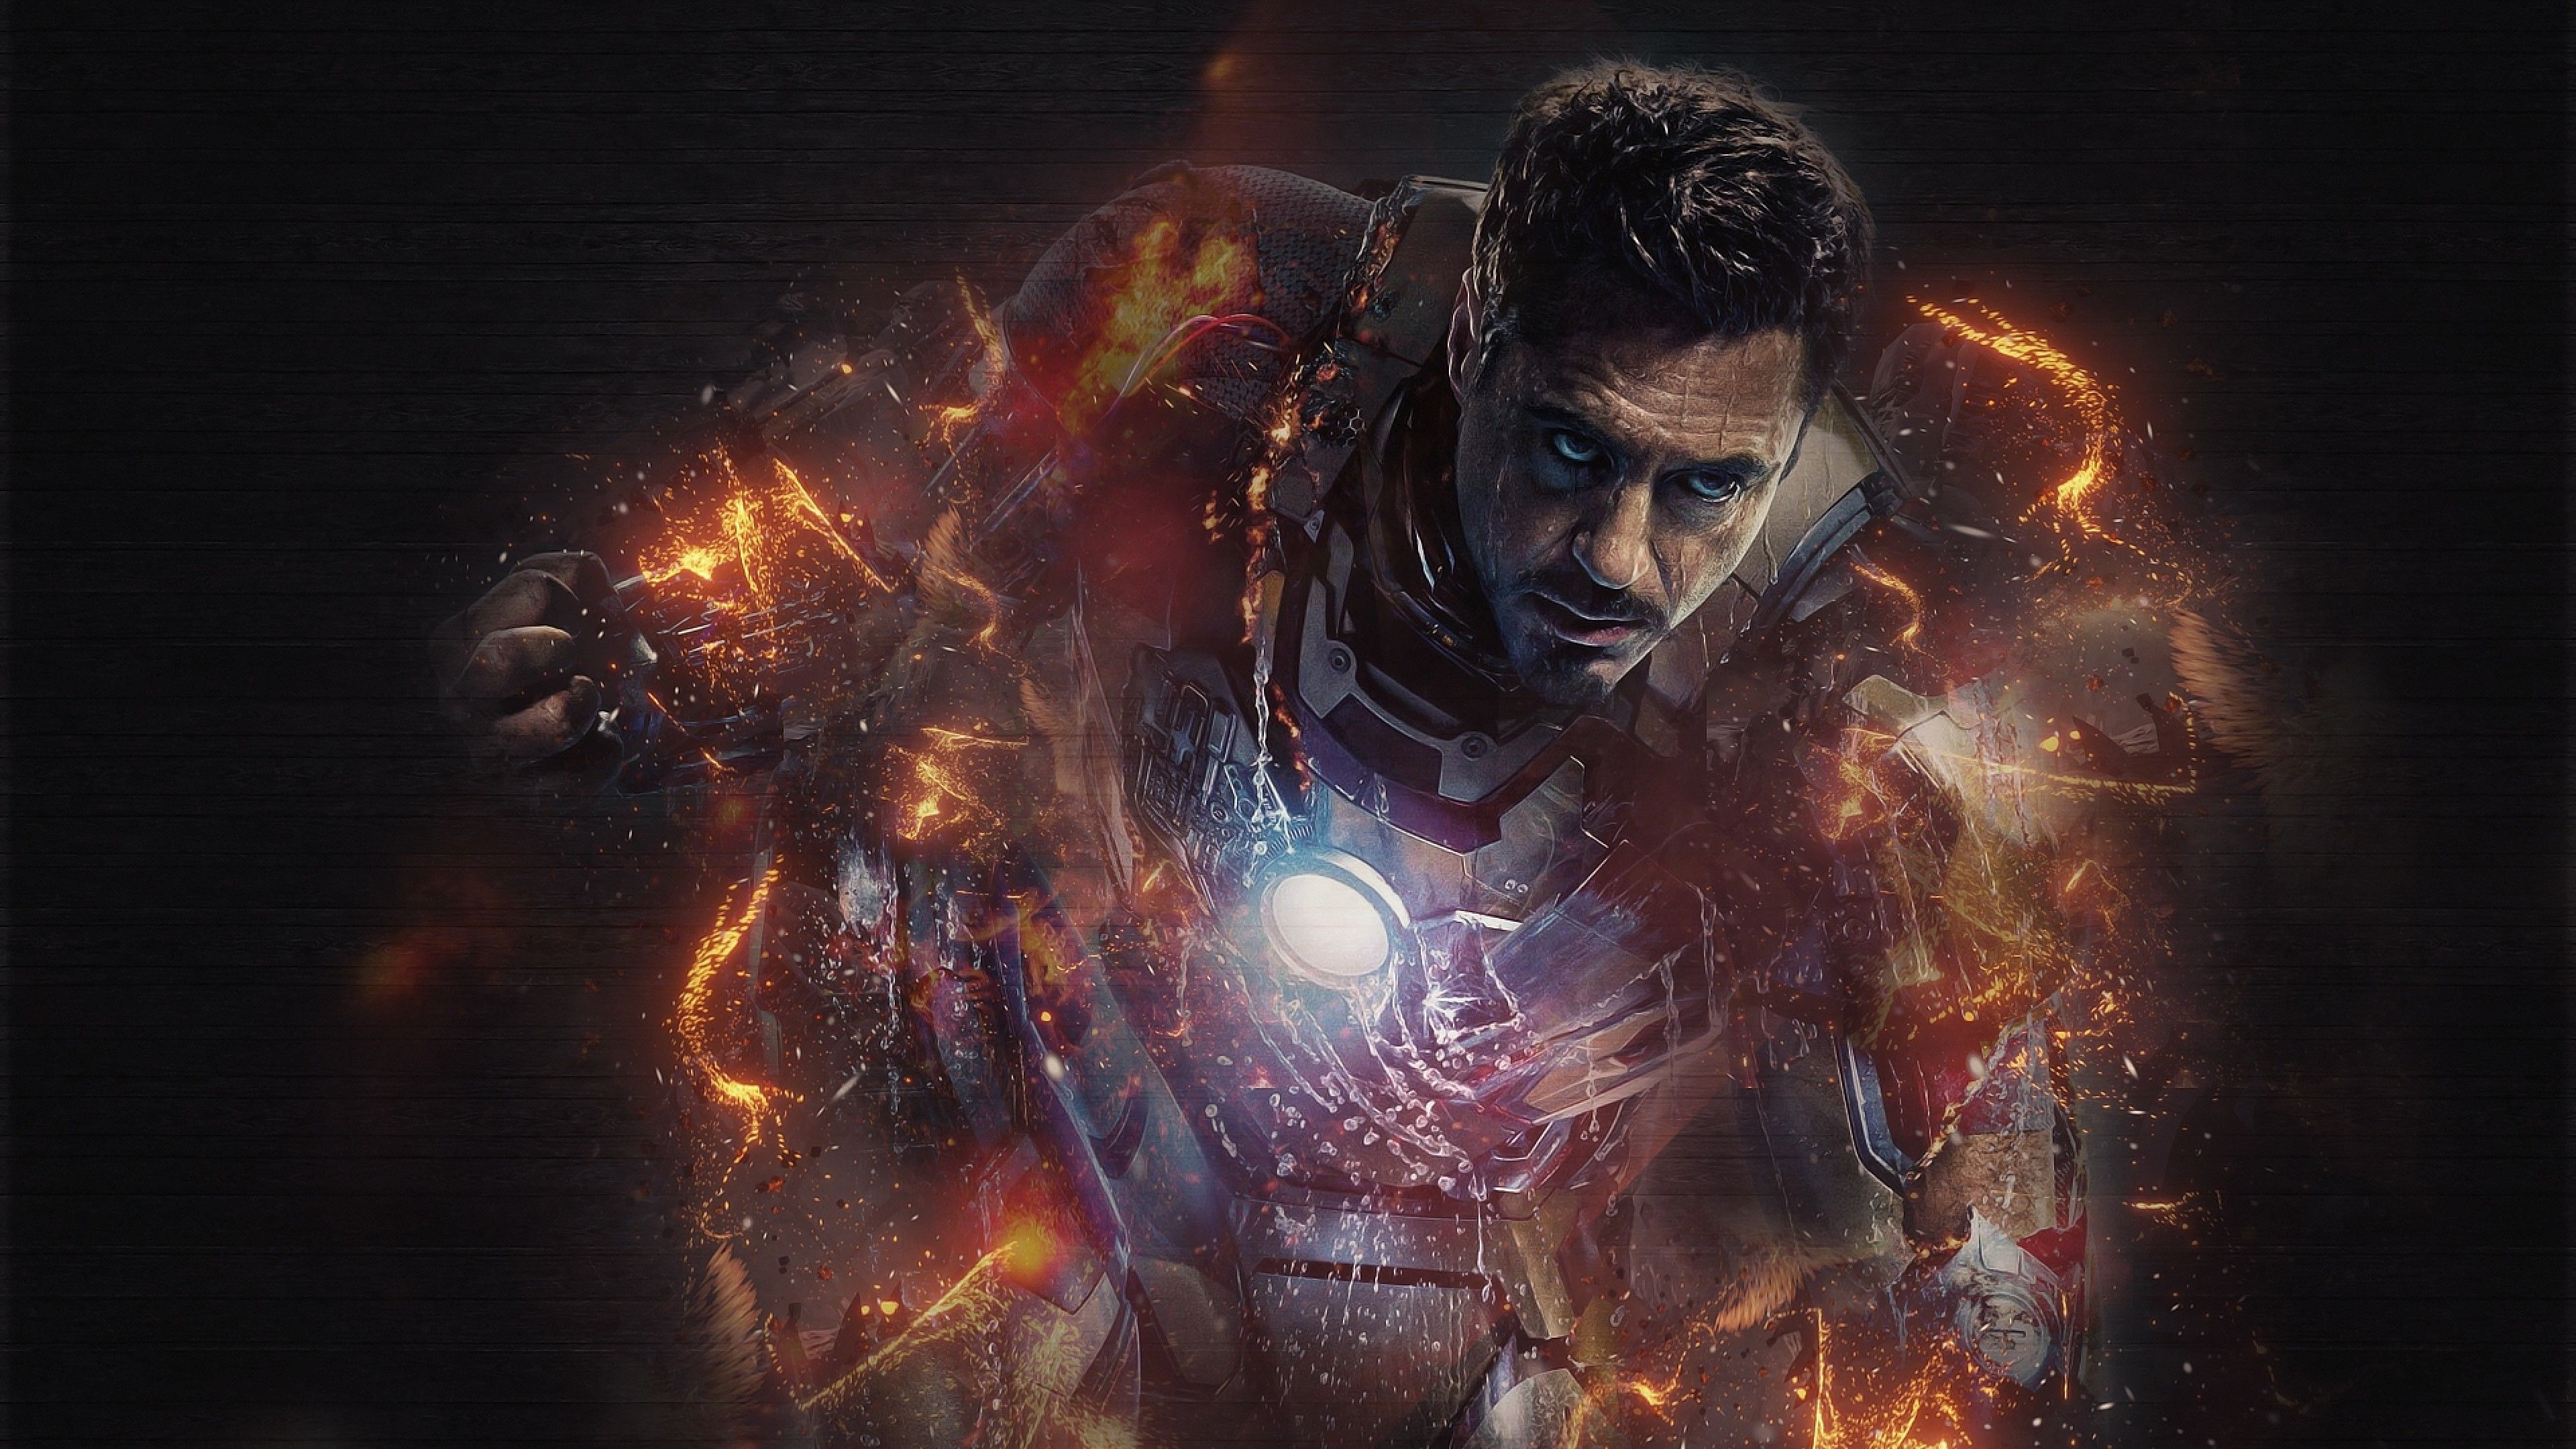 Ironman 4k 2018 Superheroes Wallpapers Robert Downey Jr Wallpapers Iron Man Wallpapers Hd Wallpapers 4k Wallpaper Iron Man Wallpaper Man Wallpaper Iron Man